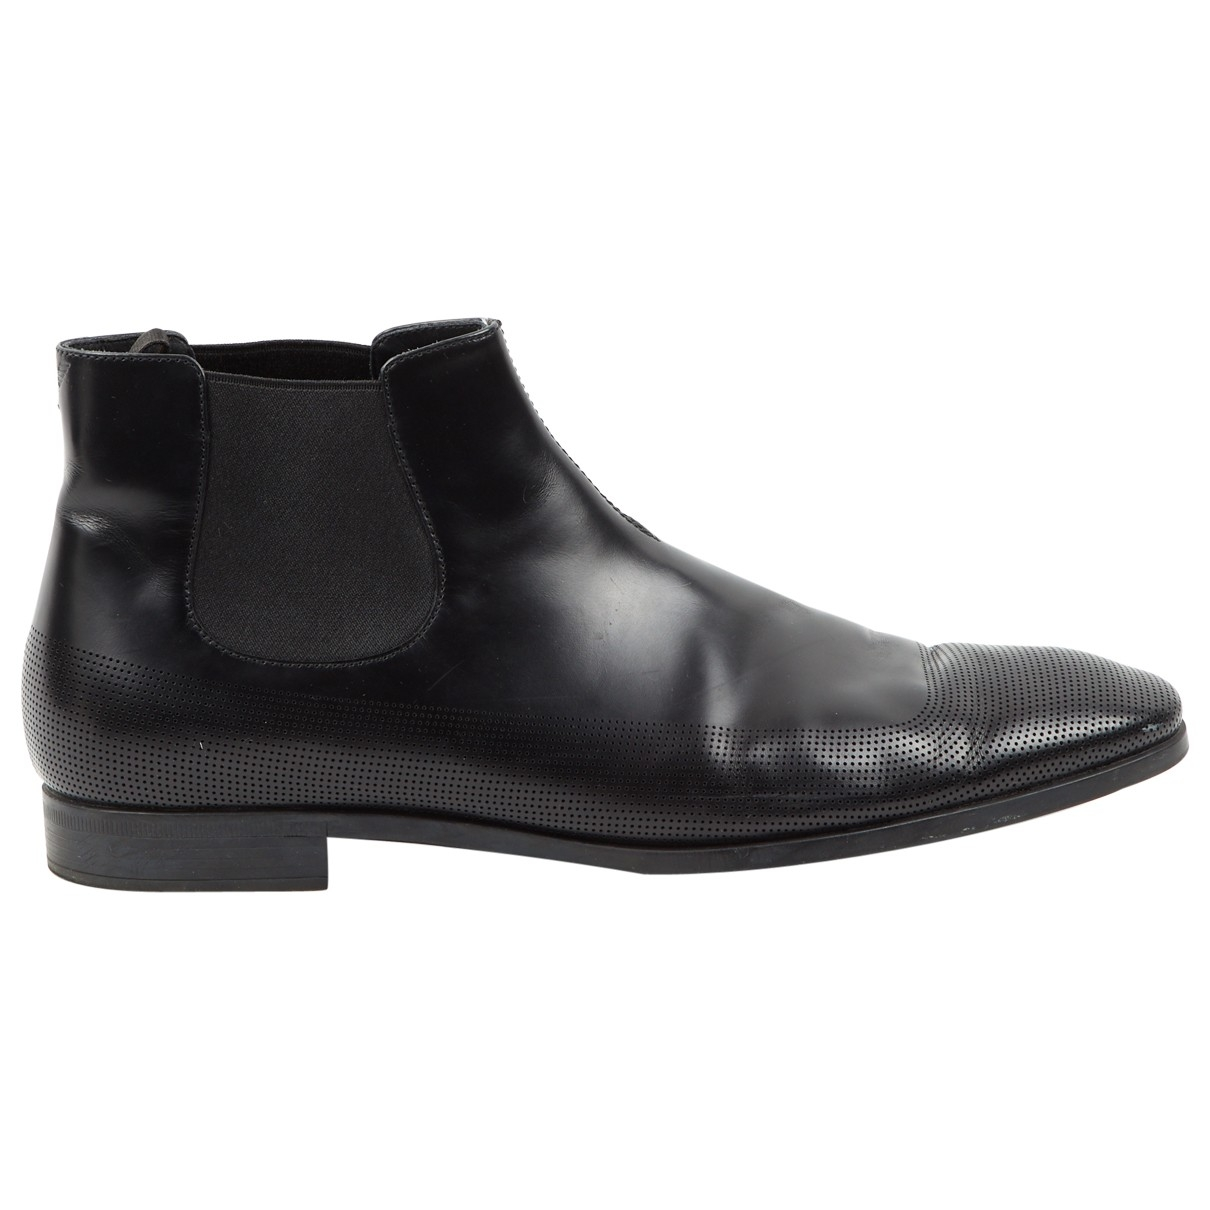 Emporio Armani \N Black Leather Boots for Men 10 UK